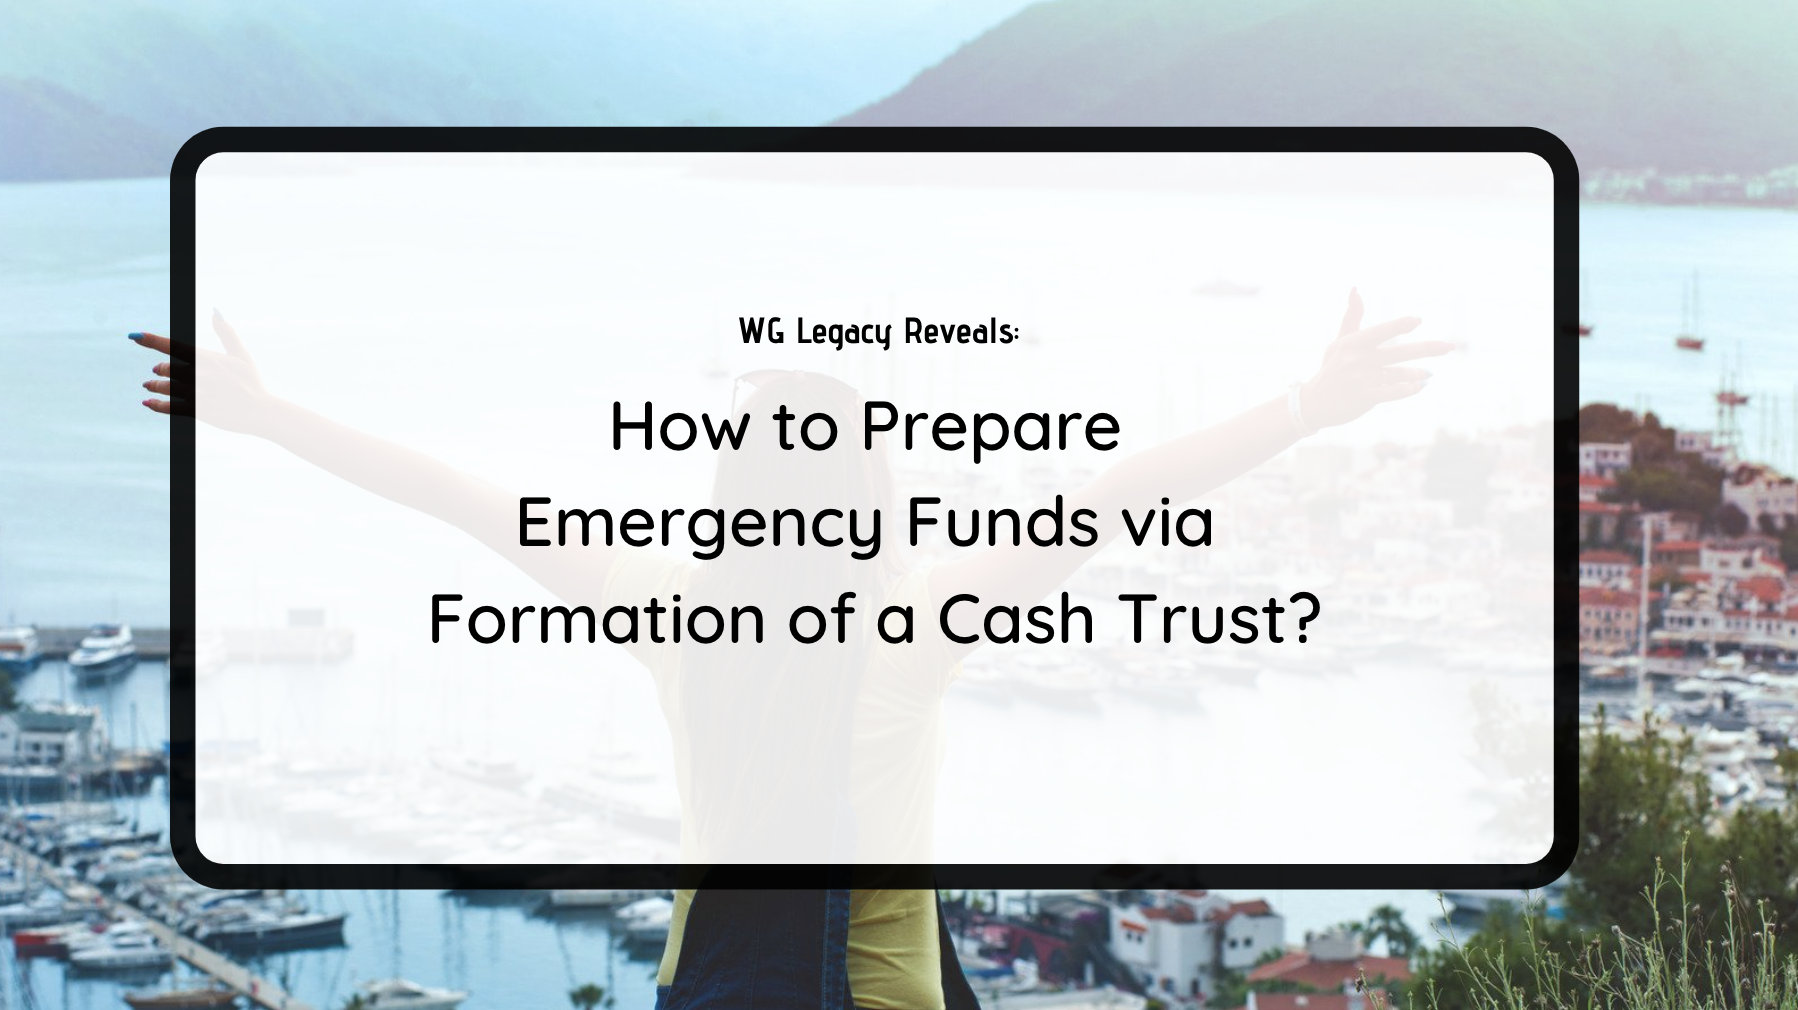 How to Prepare Emergency Funds via Formation of a Cash Trust?